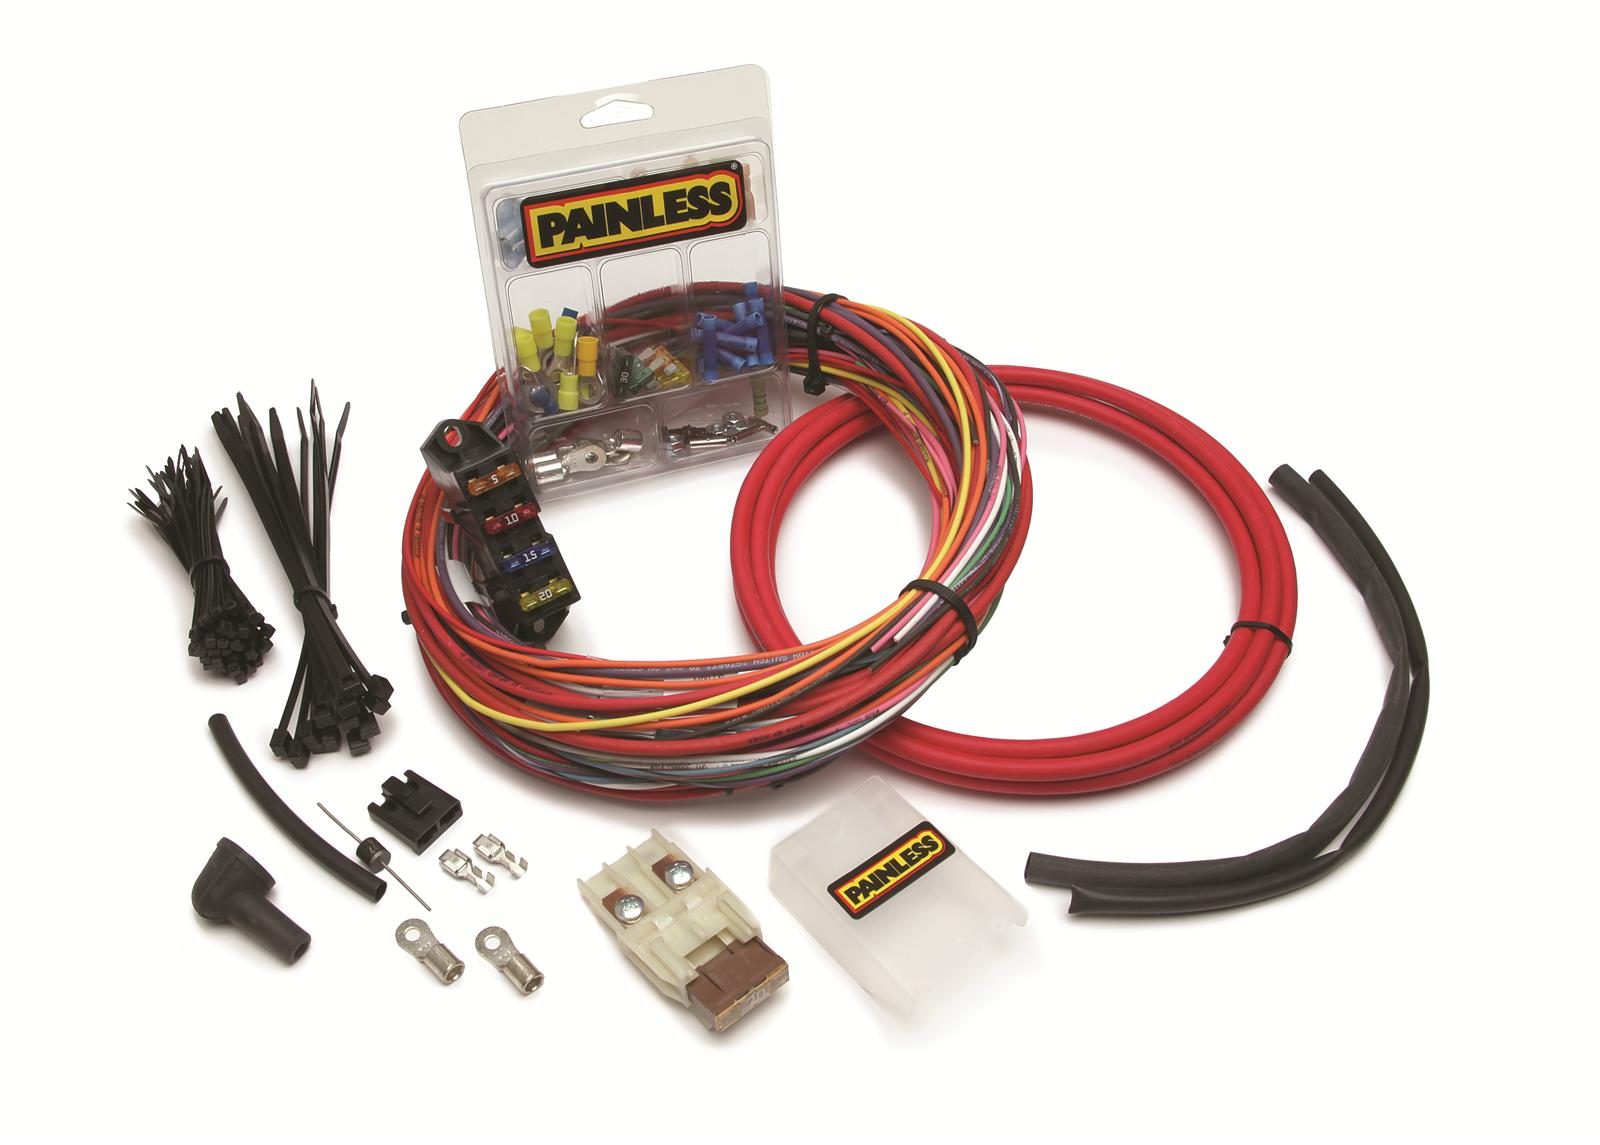 Painless Performance C.S.I. Universal Weather-Proof Engine Harnesses 30830  - Free Shipping on Orders Over $99 at Summit Racing